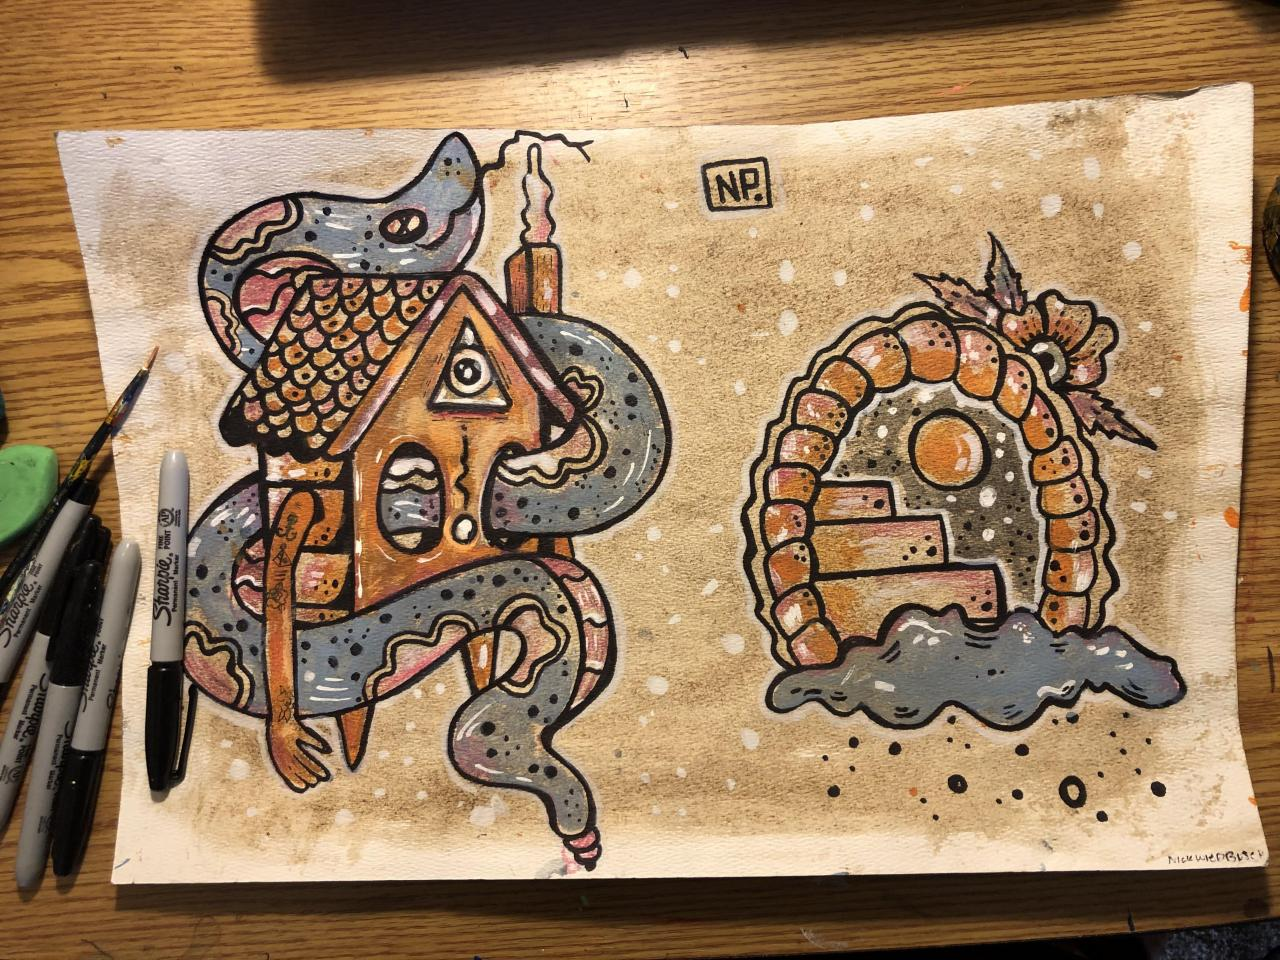 Coffee stained watercolor paper acrylic and sharpie. @nomadicplains